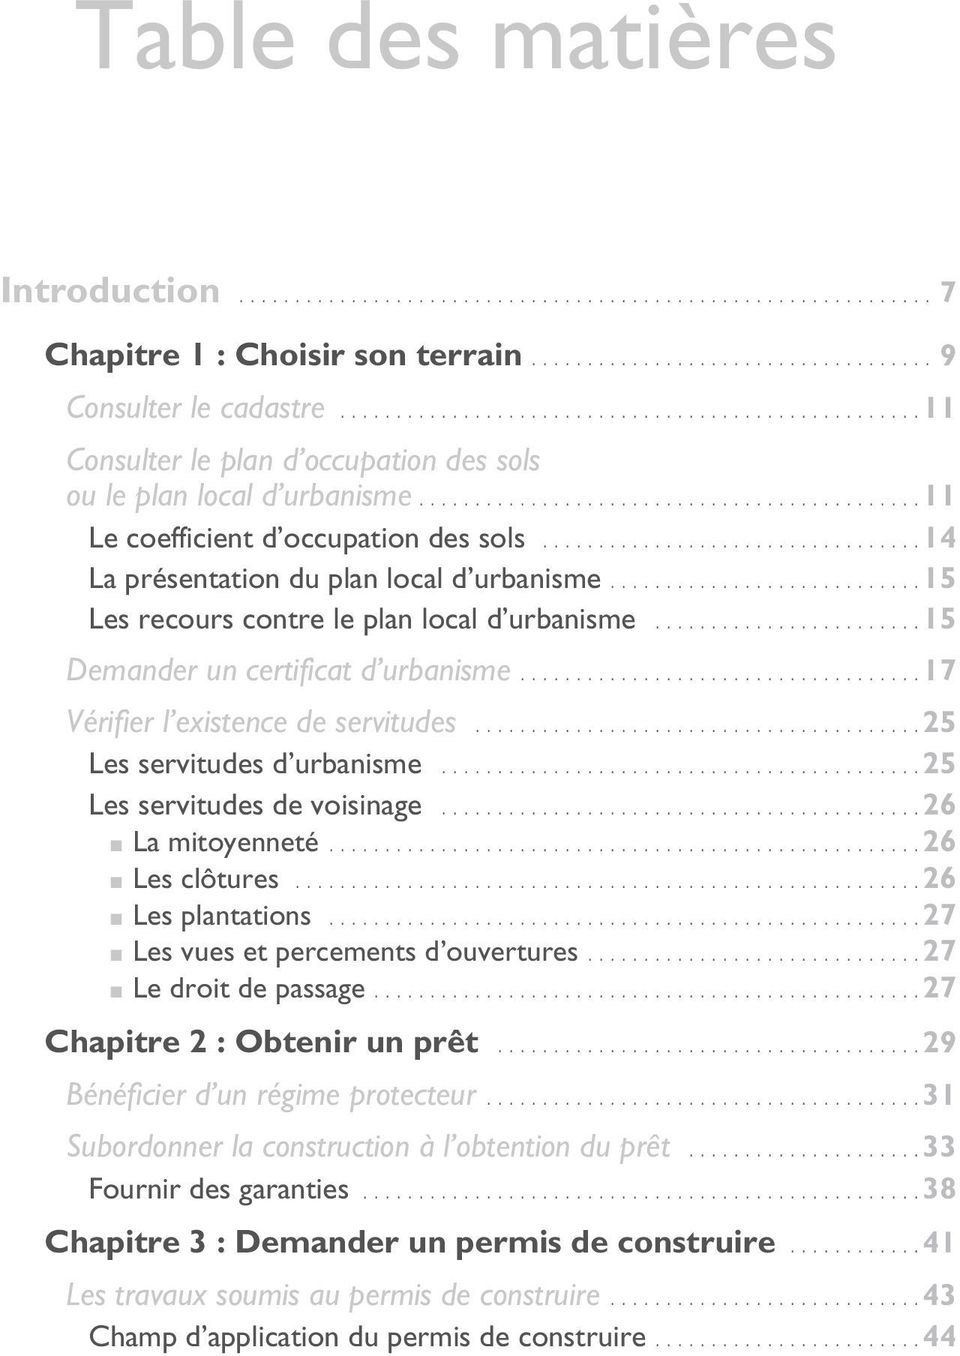 Table des mati res introduction pdf for Certificat d urbanisme positif et refus de permis de construire